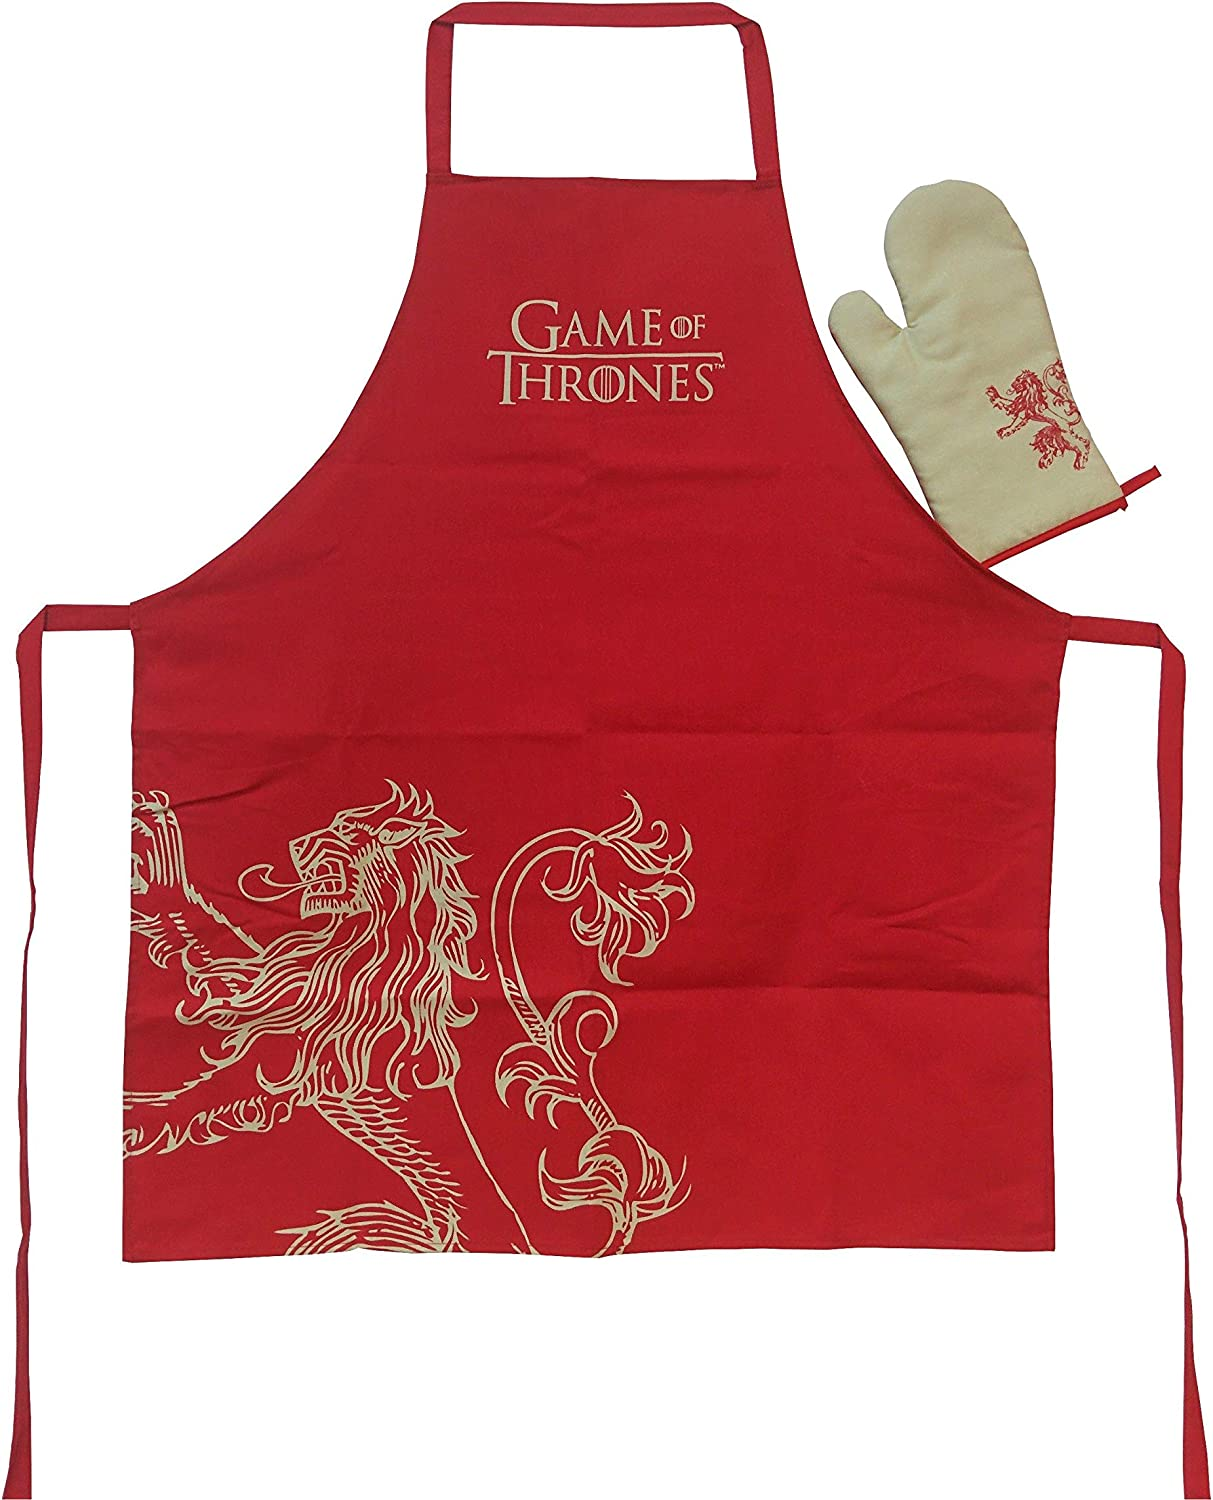 SD Toys Game of Thrones Lannister Apron /& Oven Mitt Set Free Shipping!